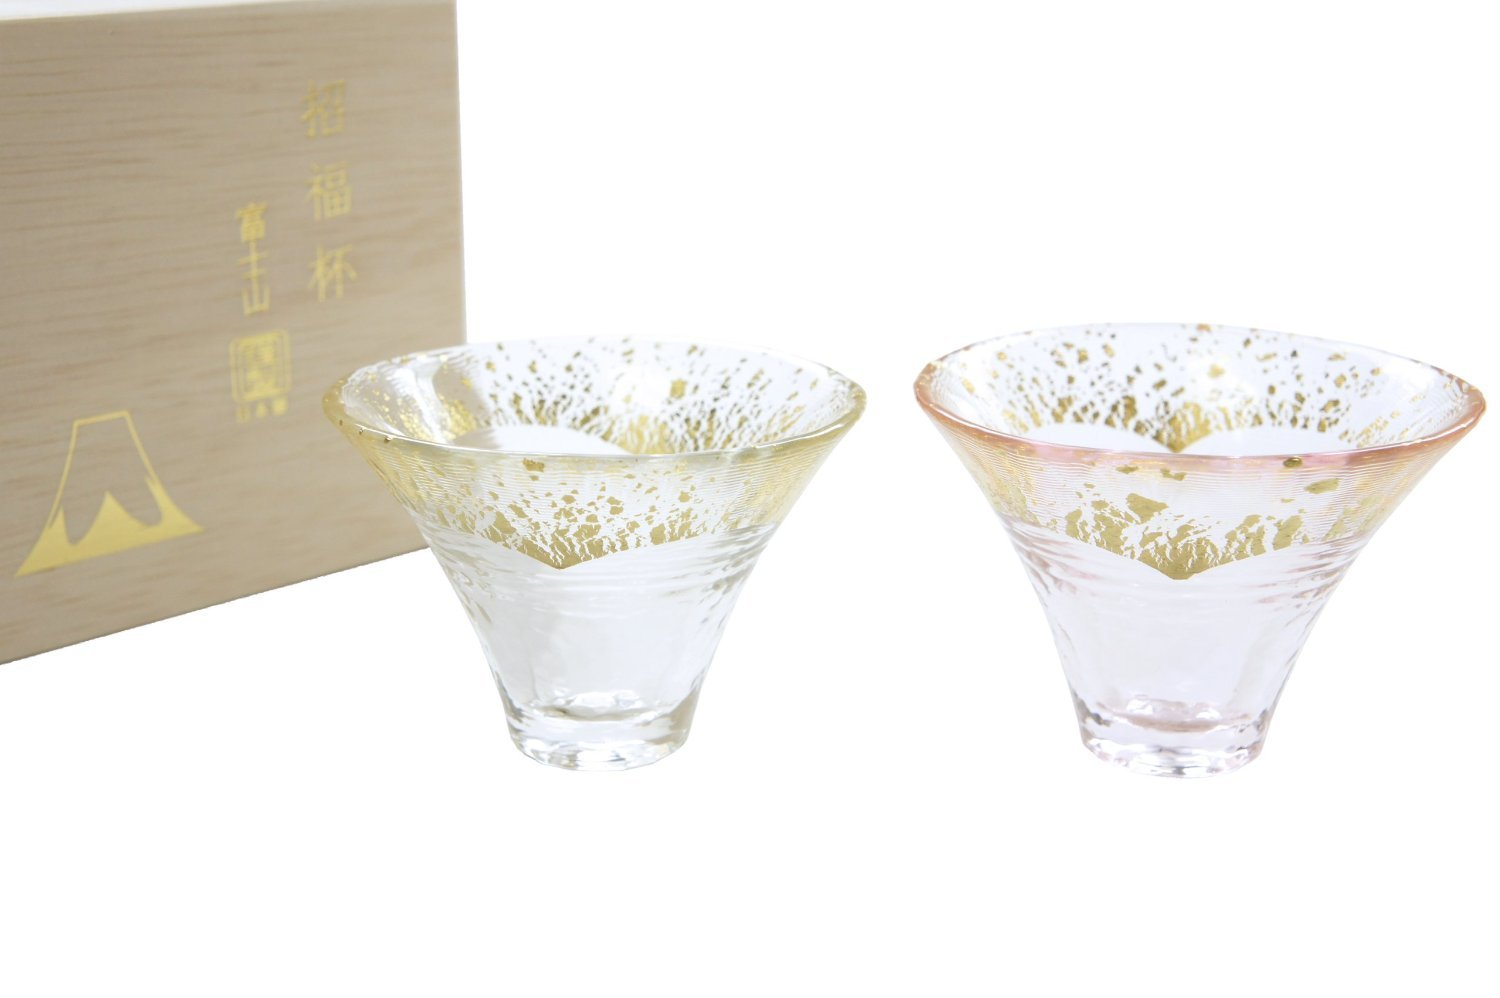 Japanese Lucky Cut Glass Sake Cups A Pair of Mt. Fuji